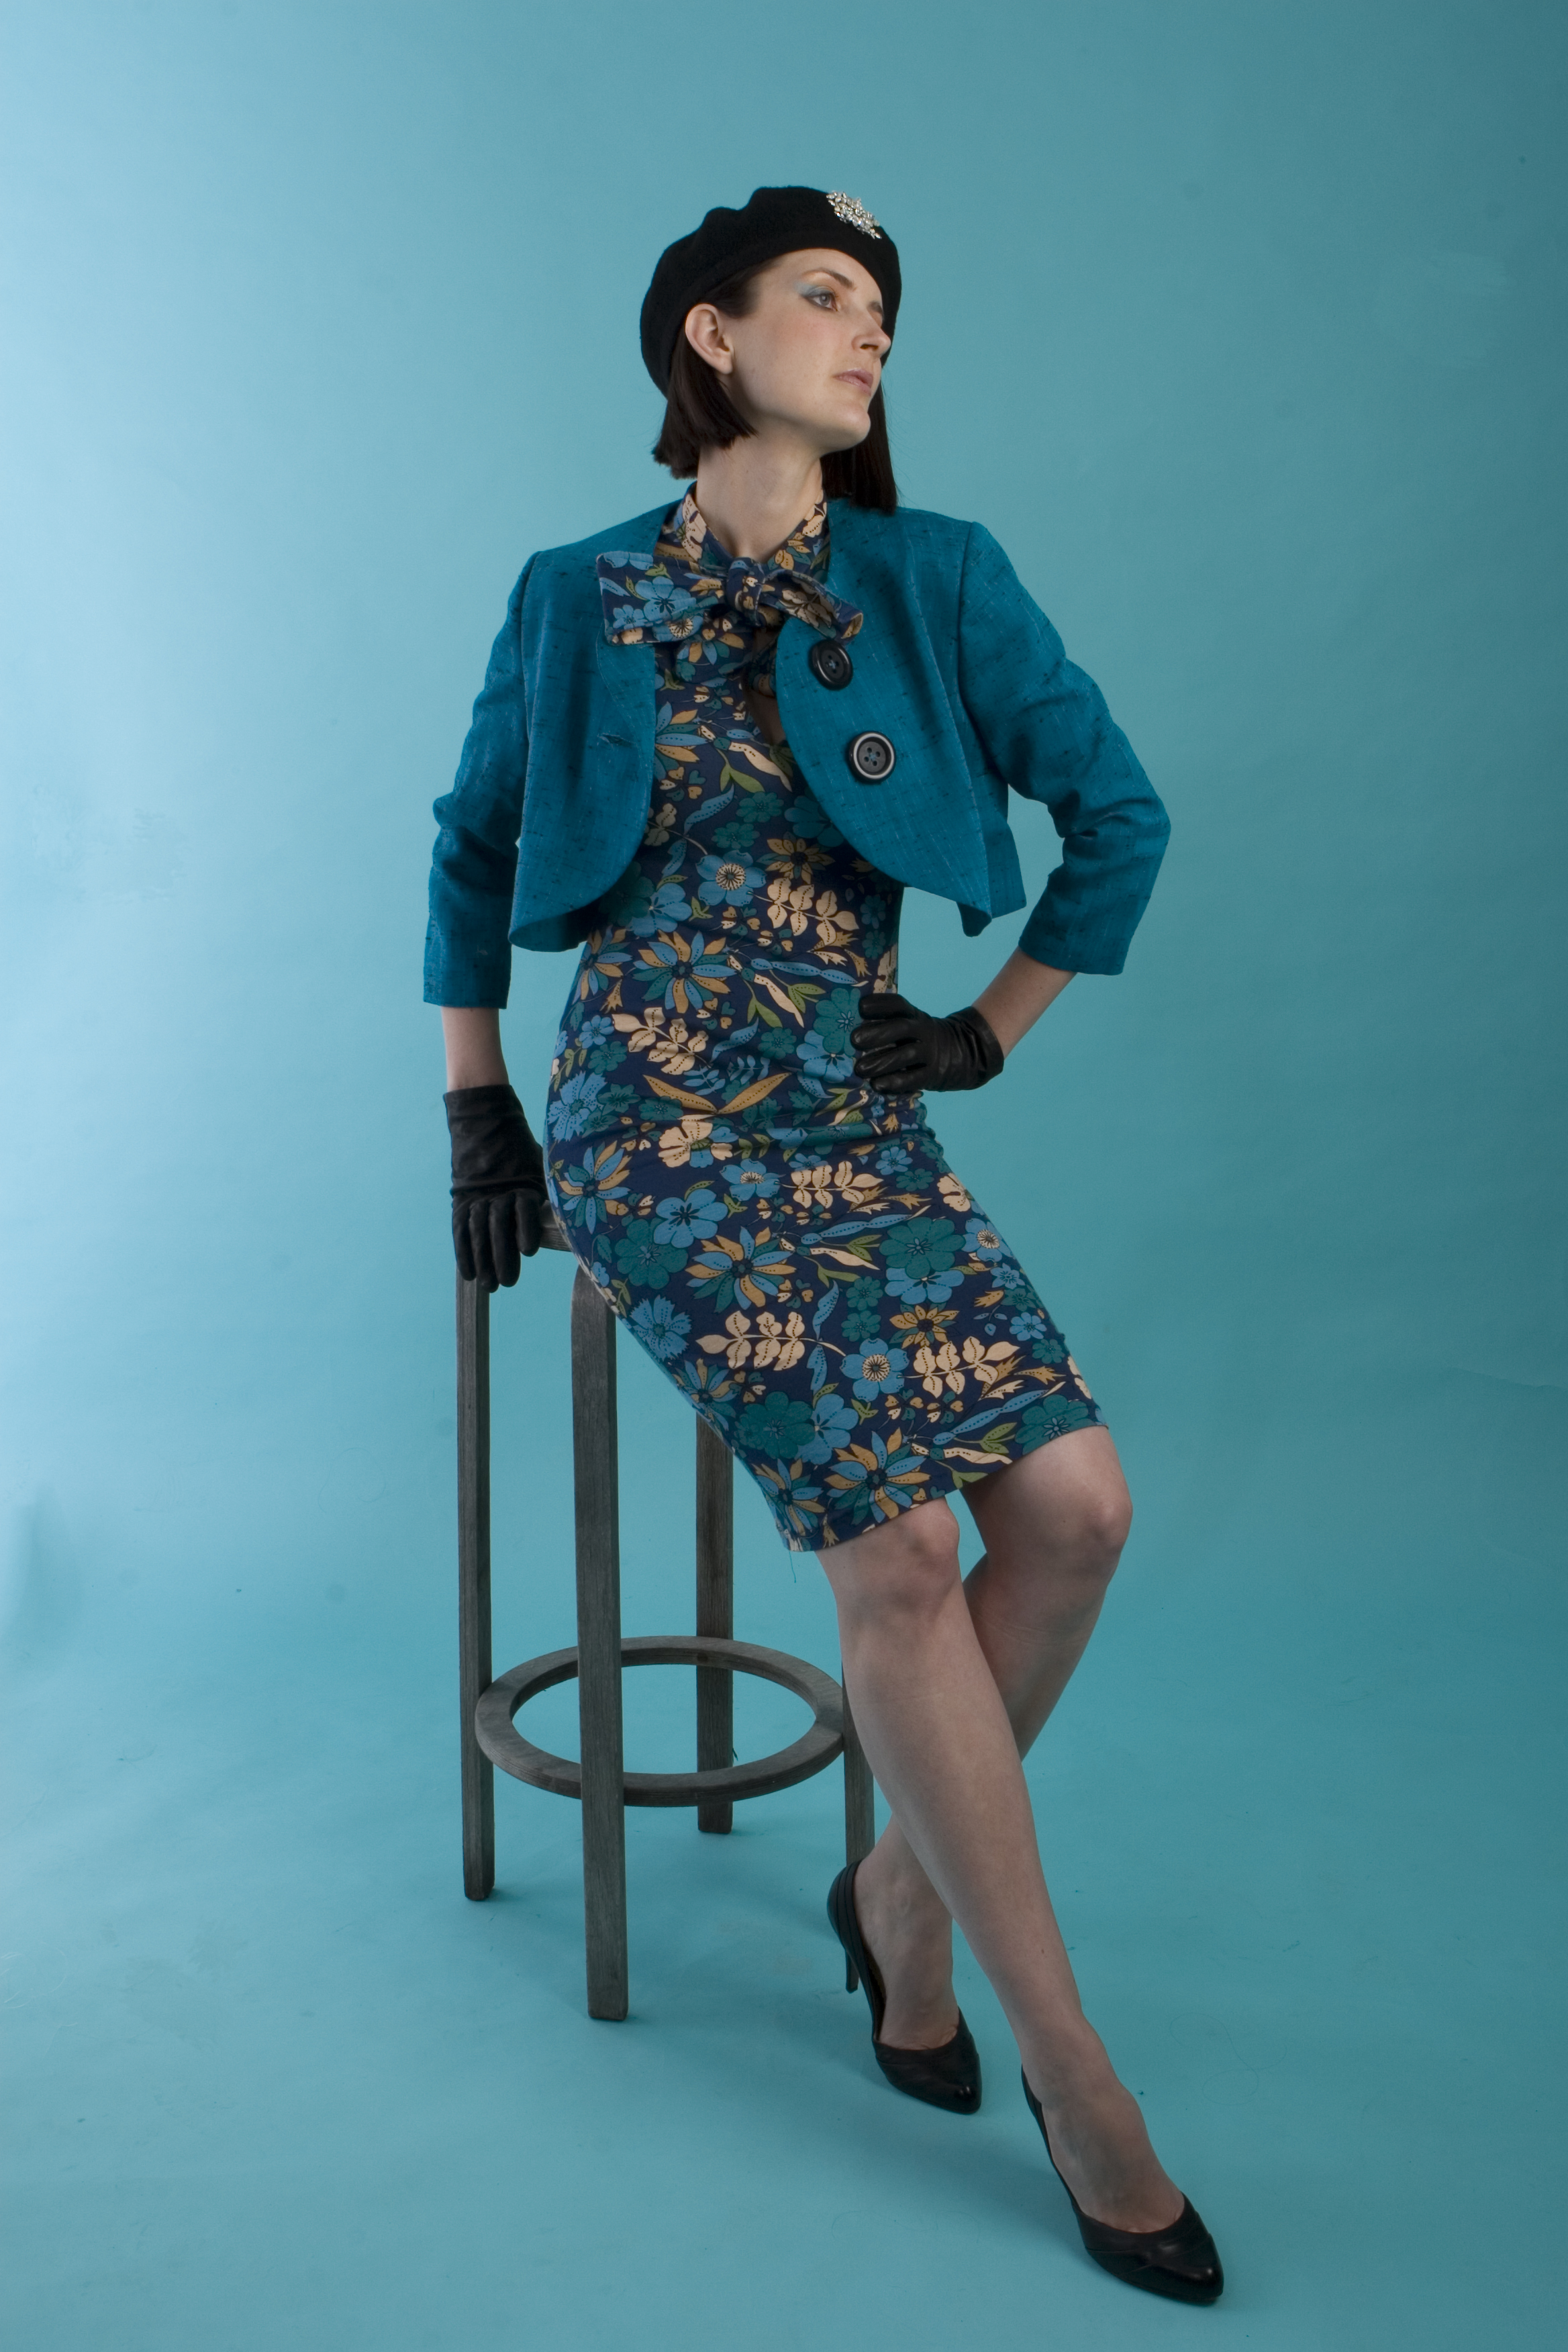 The above Jade or Turquoised coloured bolero jacket in this photo has been handmade from a gorgeous bright vintage wool, and features oversized buttons on the front. I love this bolero with this printed jersey knit dress. Very vintage!